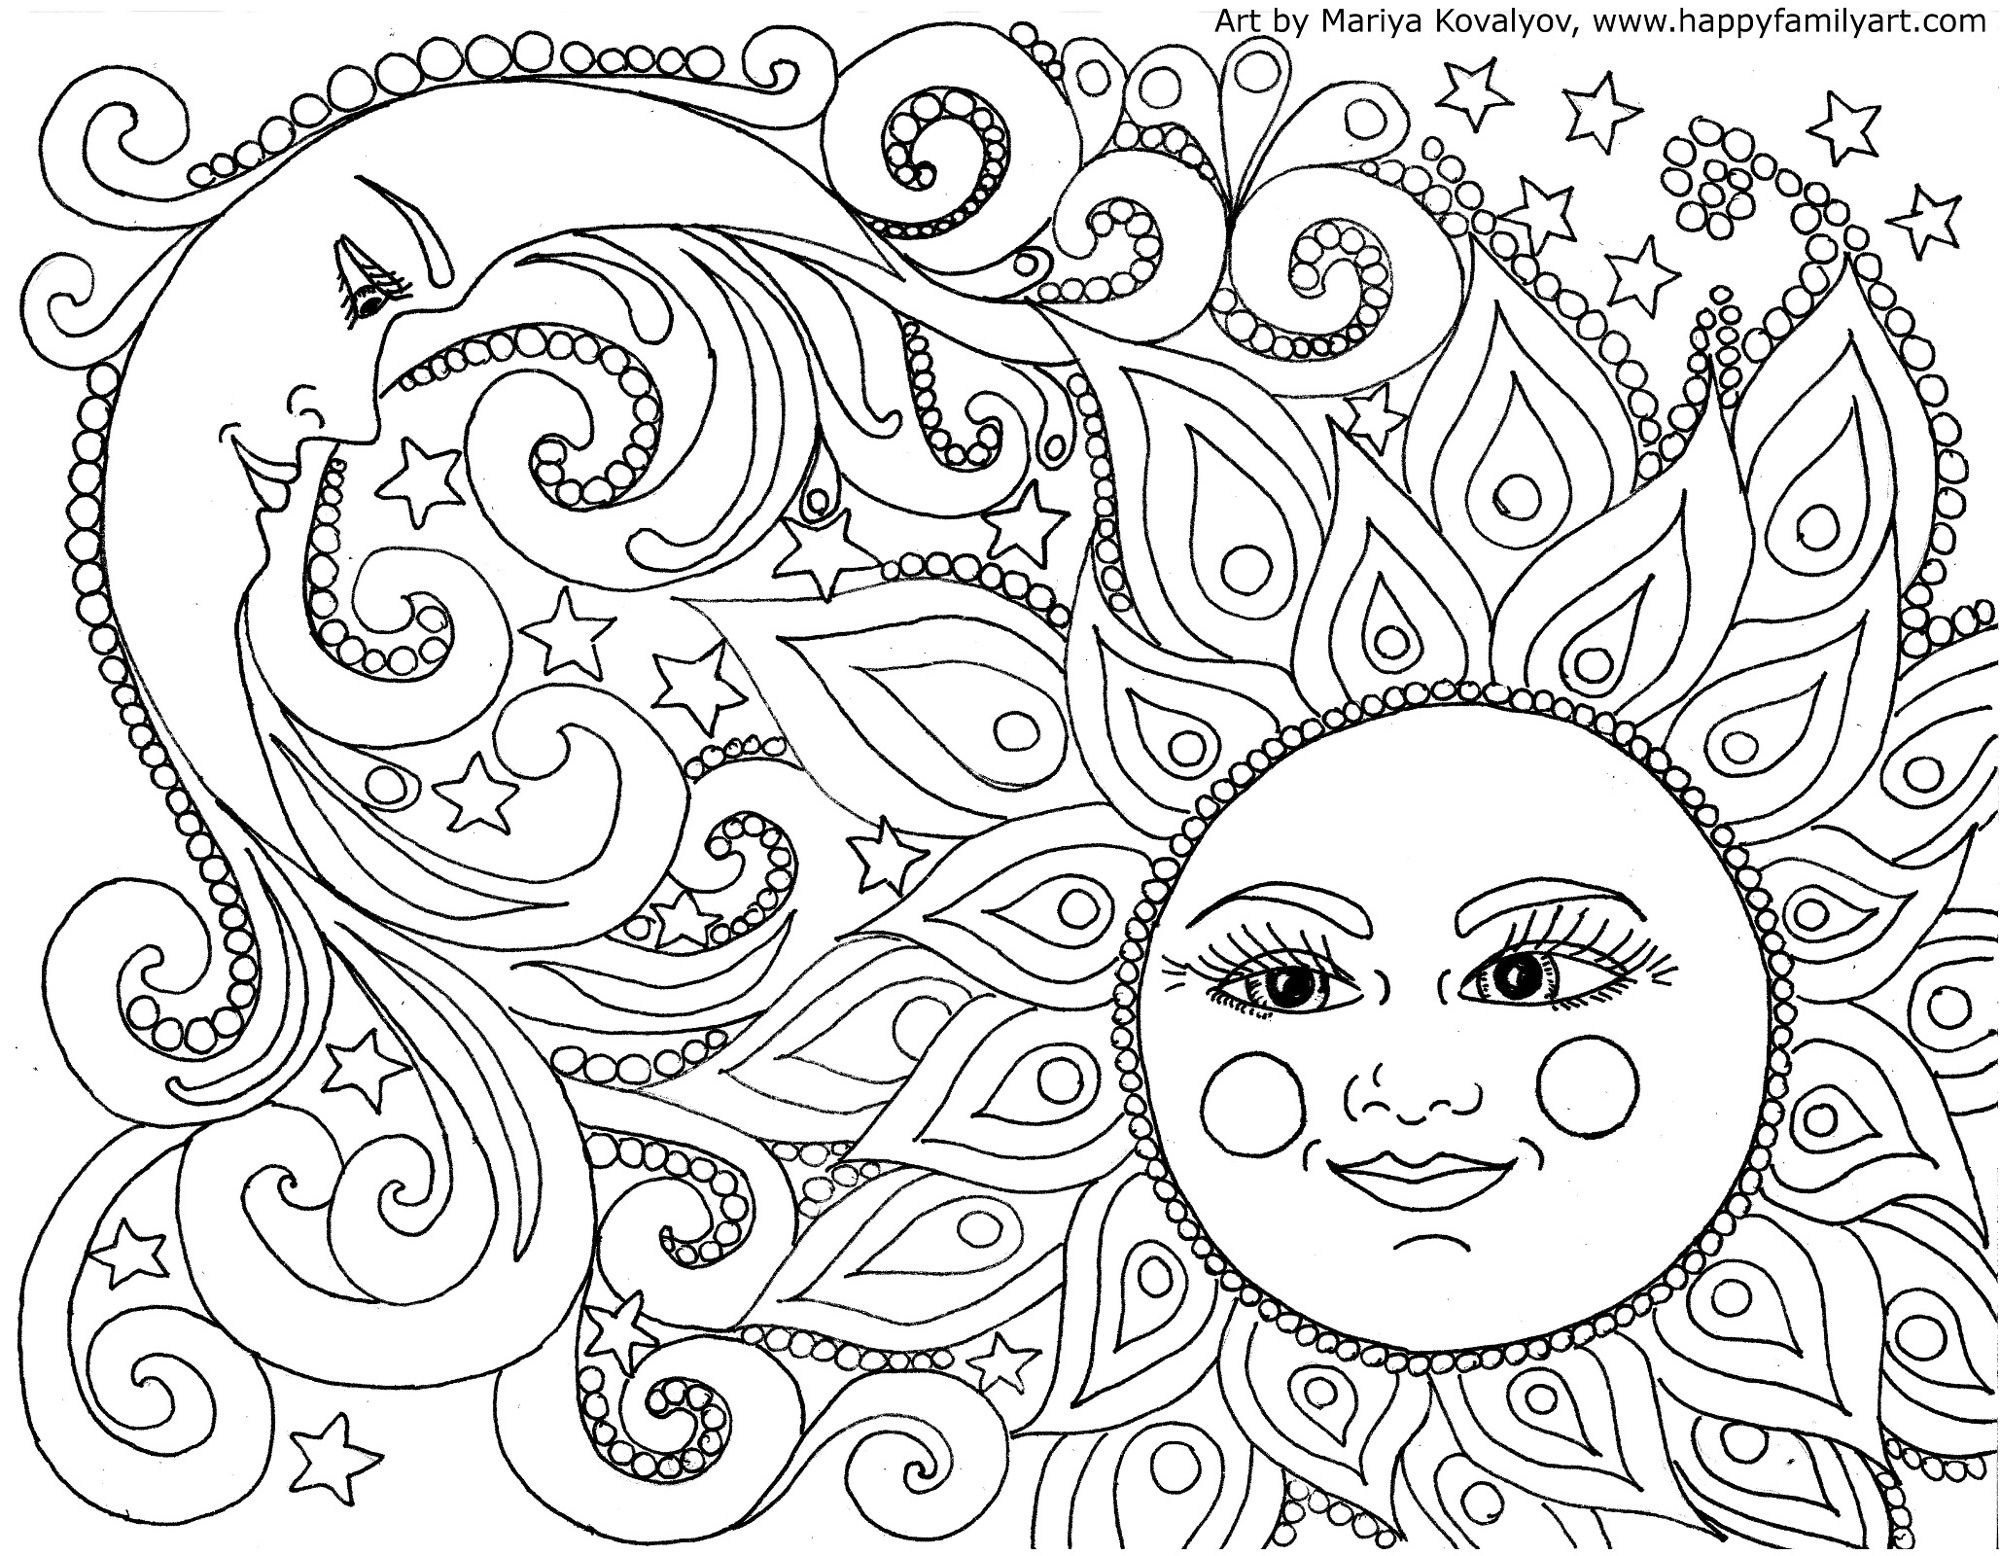 Happy Family Art - Original And Fun Coloring Pages - Free Printable Coloring Pages